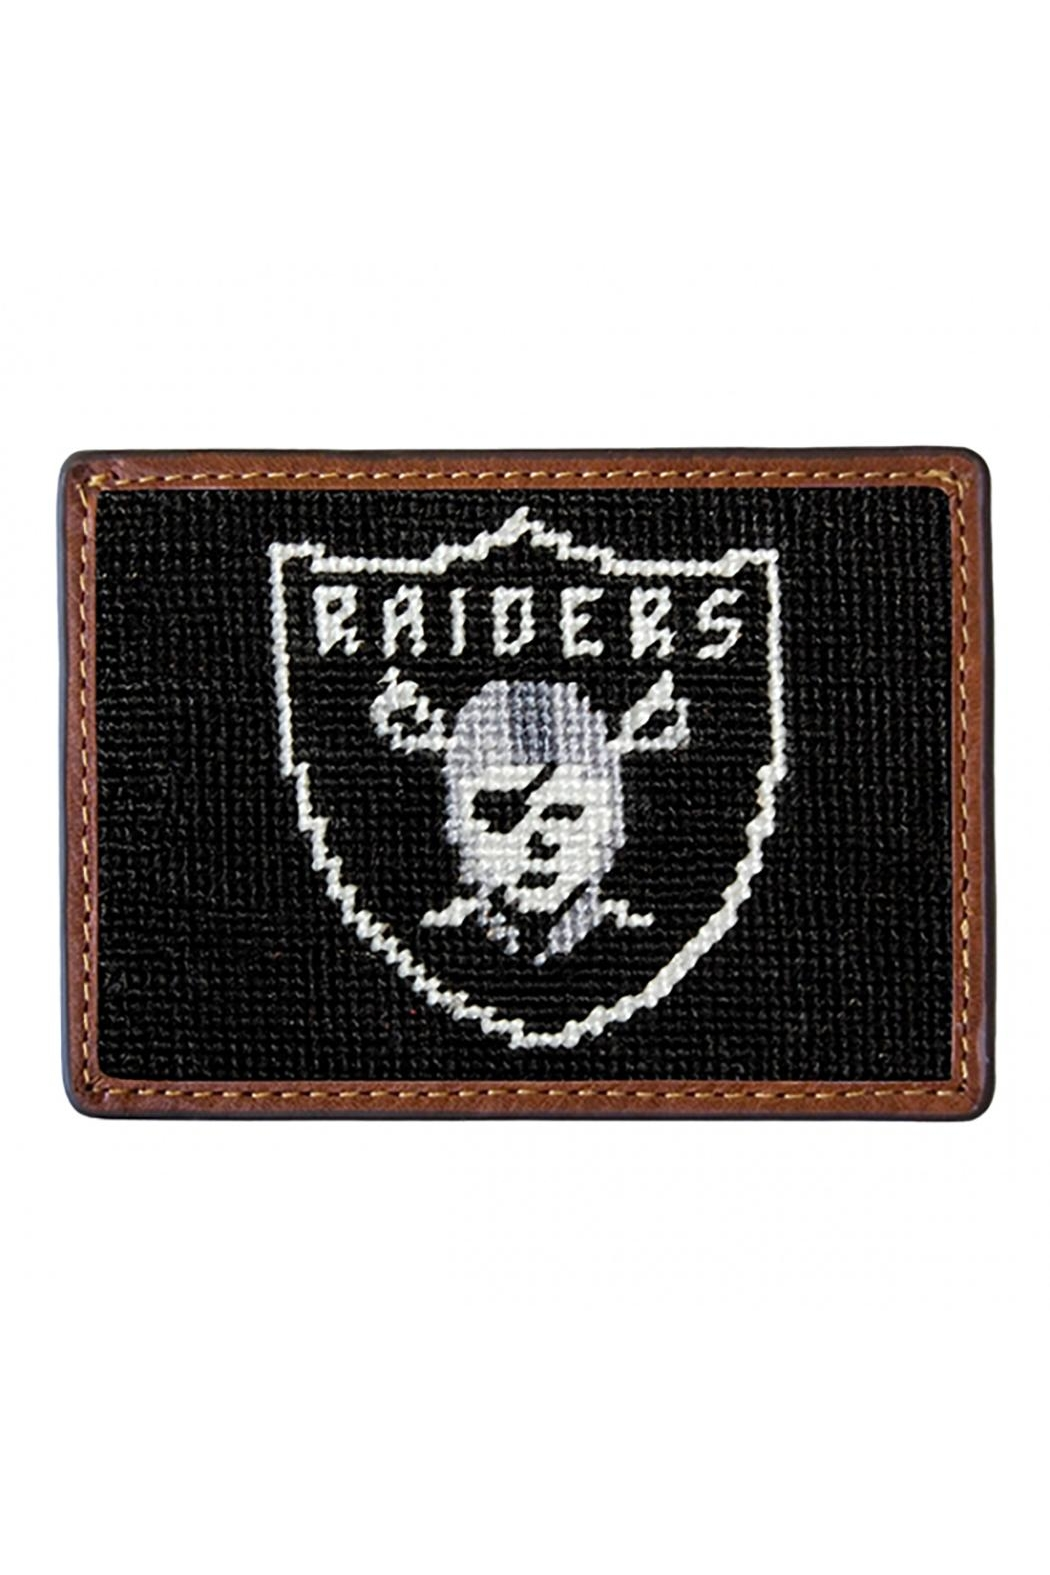 Smathers and Branson Raiders 1/2 Wallet - Main Image